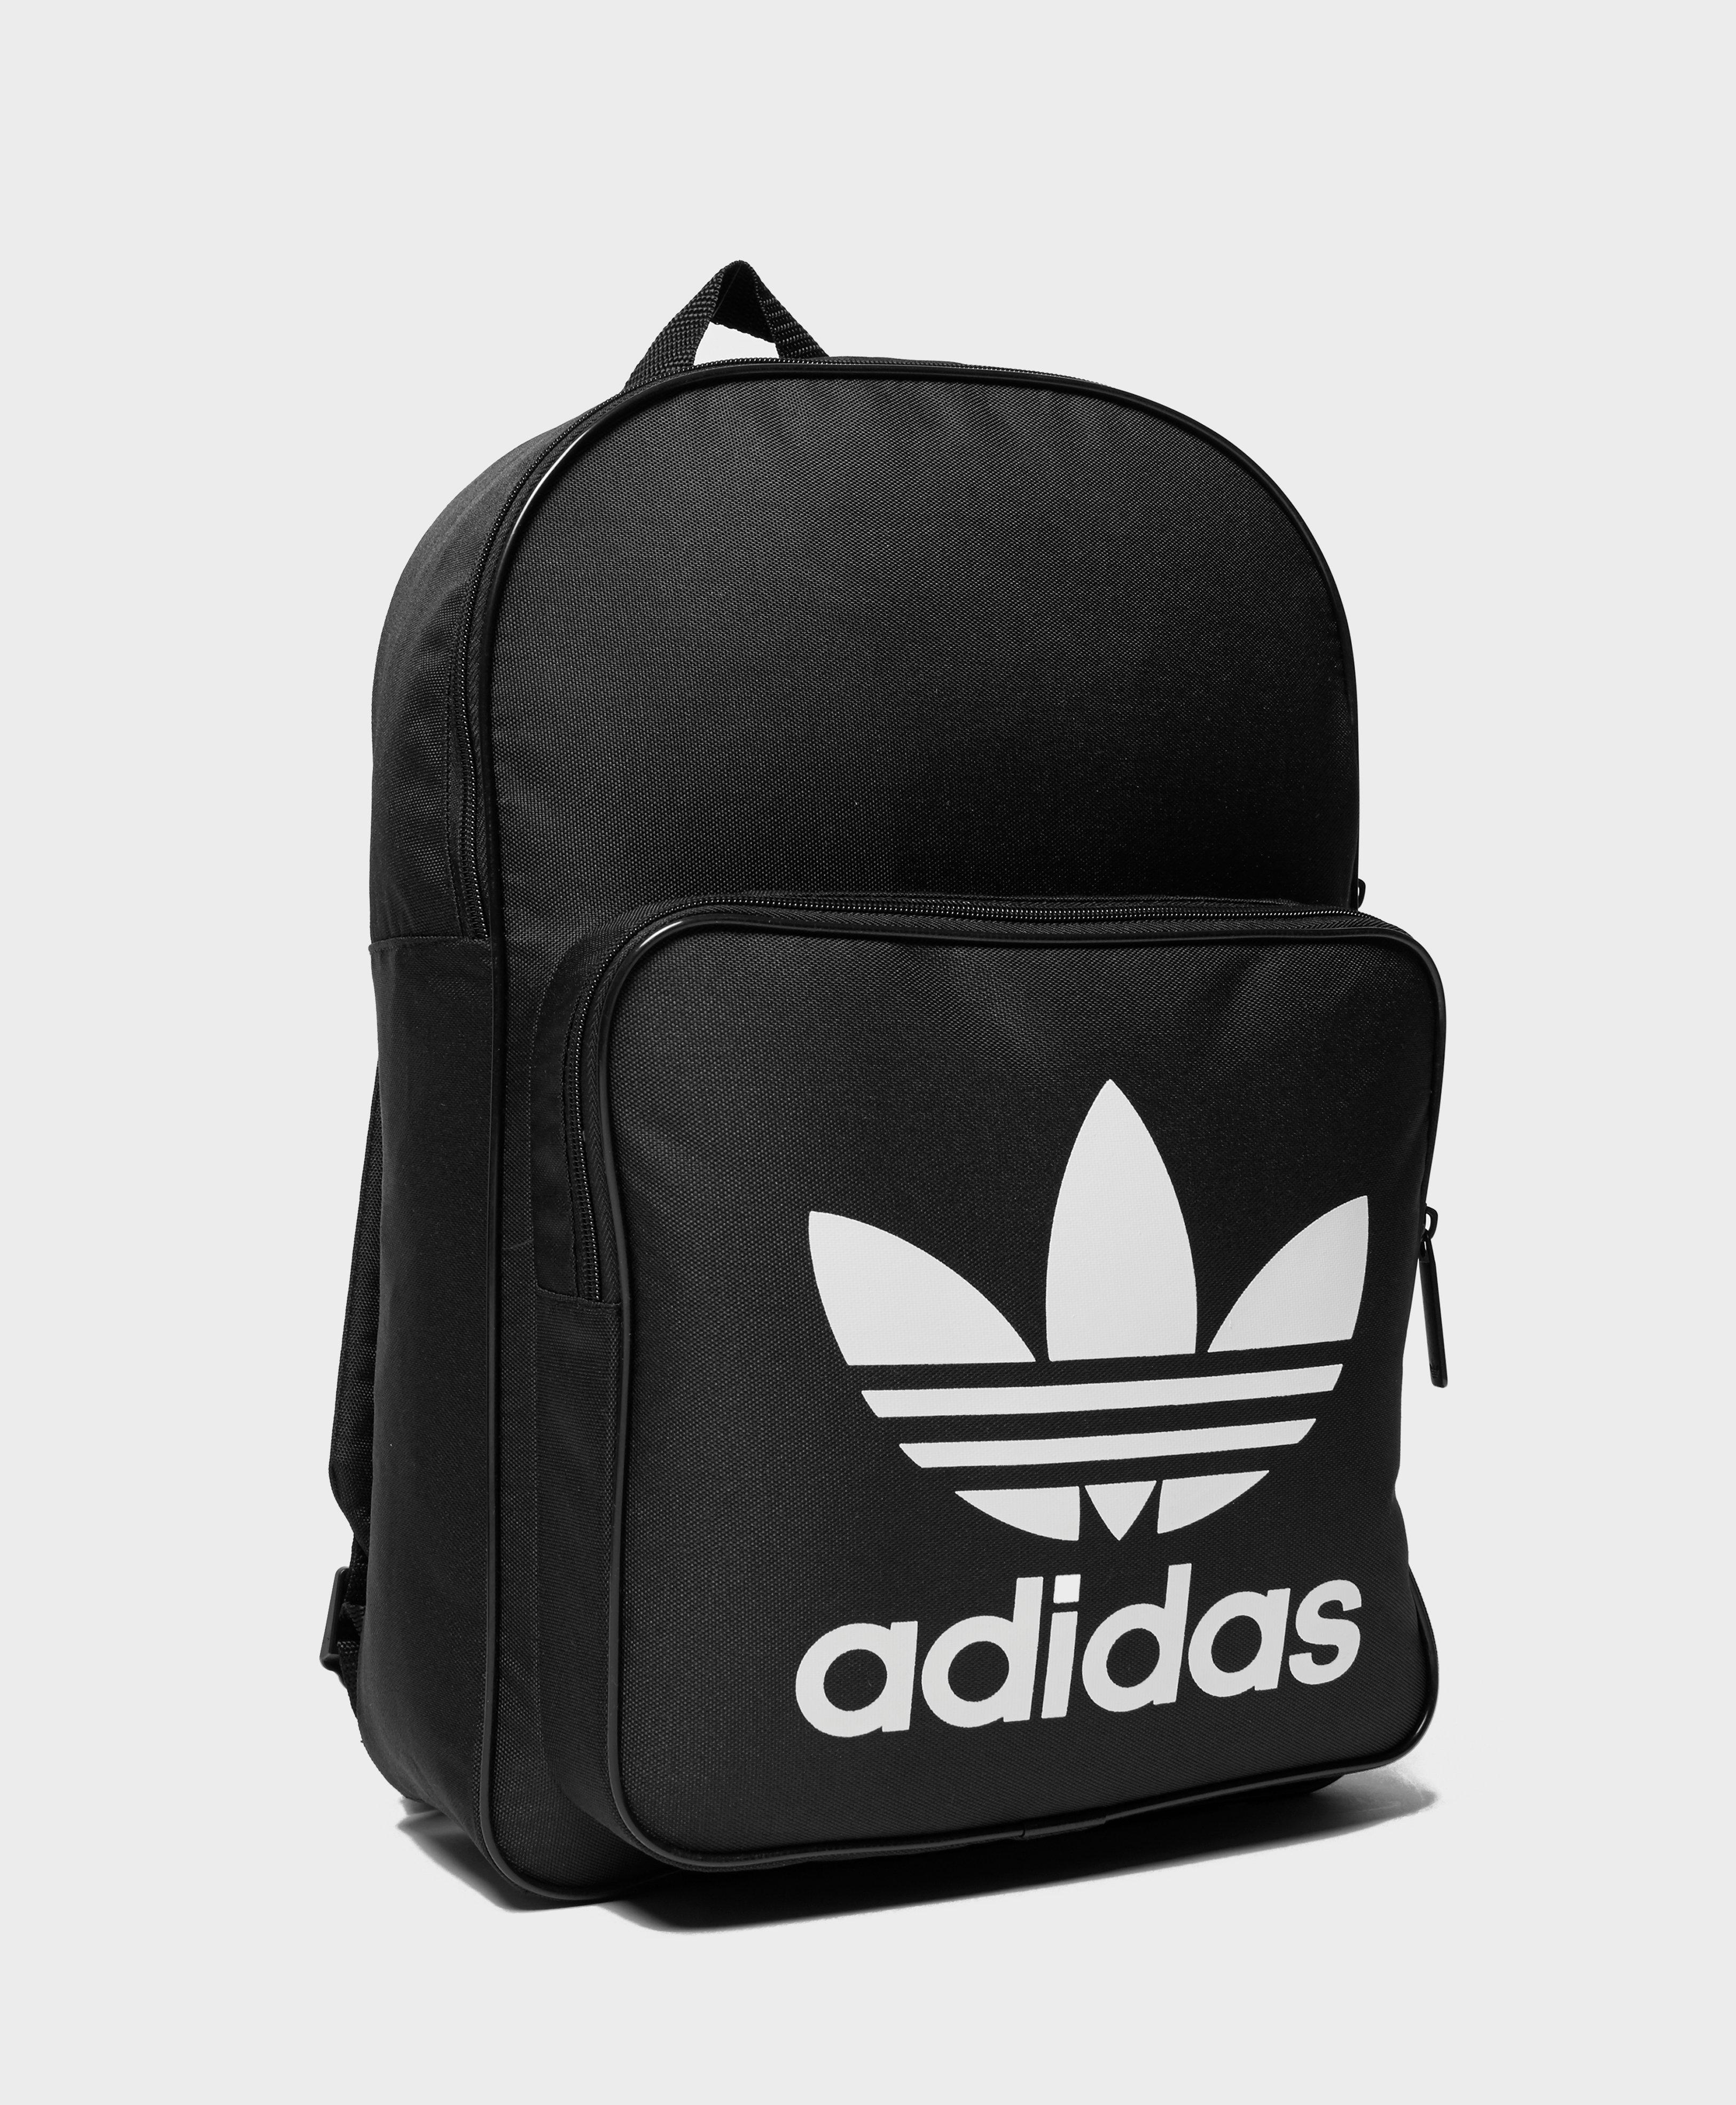 adidas Originals Classic Trefoil Backpack in Black for Men - Save 13% - Lyst 52658368aa906